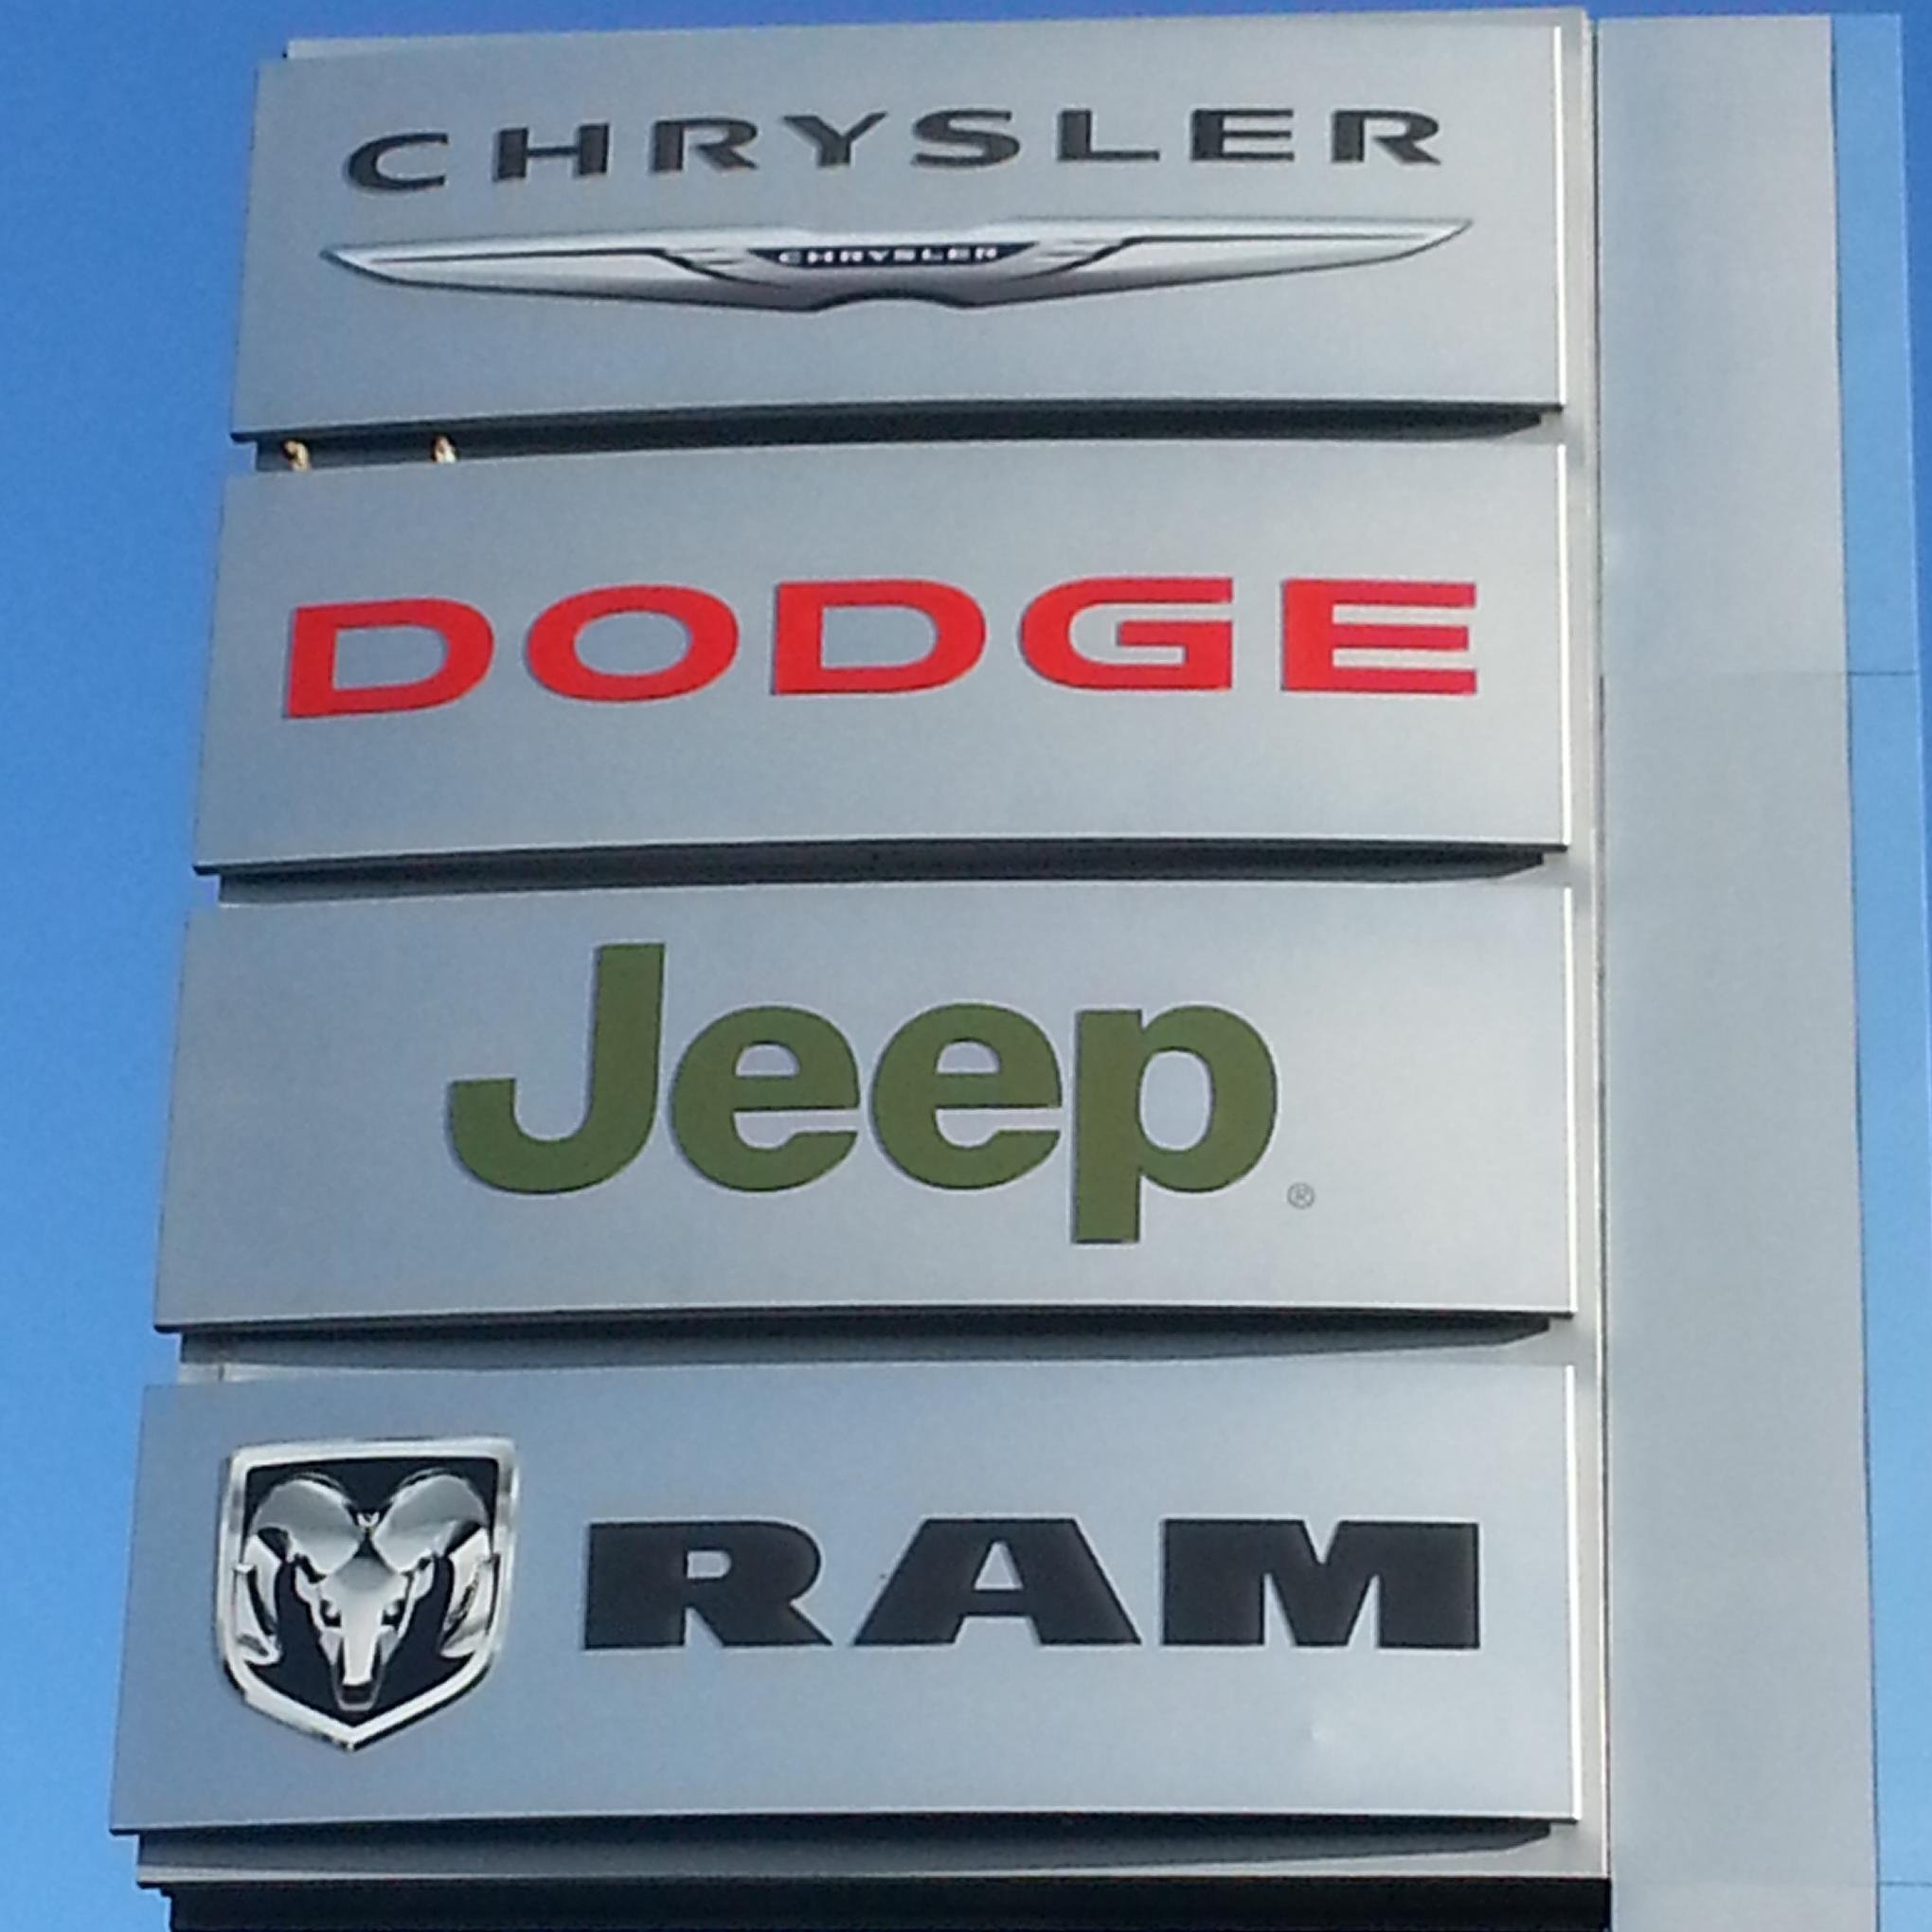 Mann Chrysler Dodge Jeep Ram of Mount Sterling